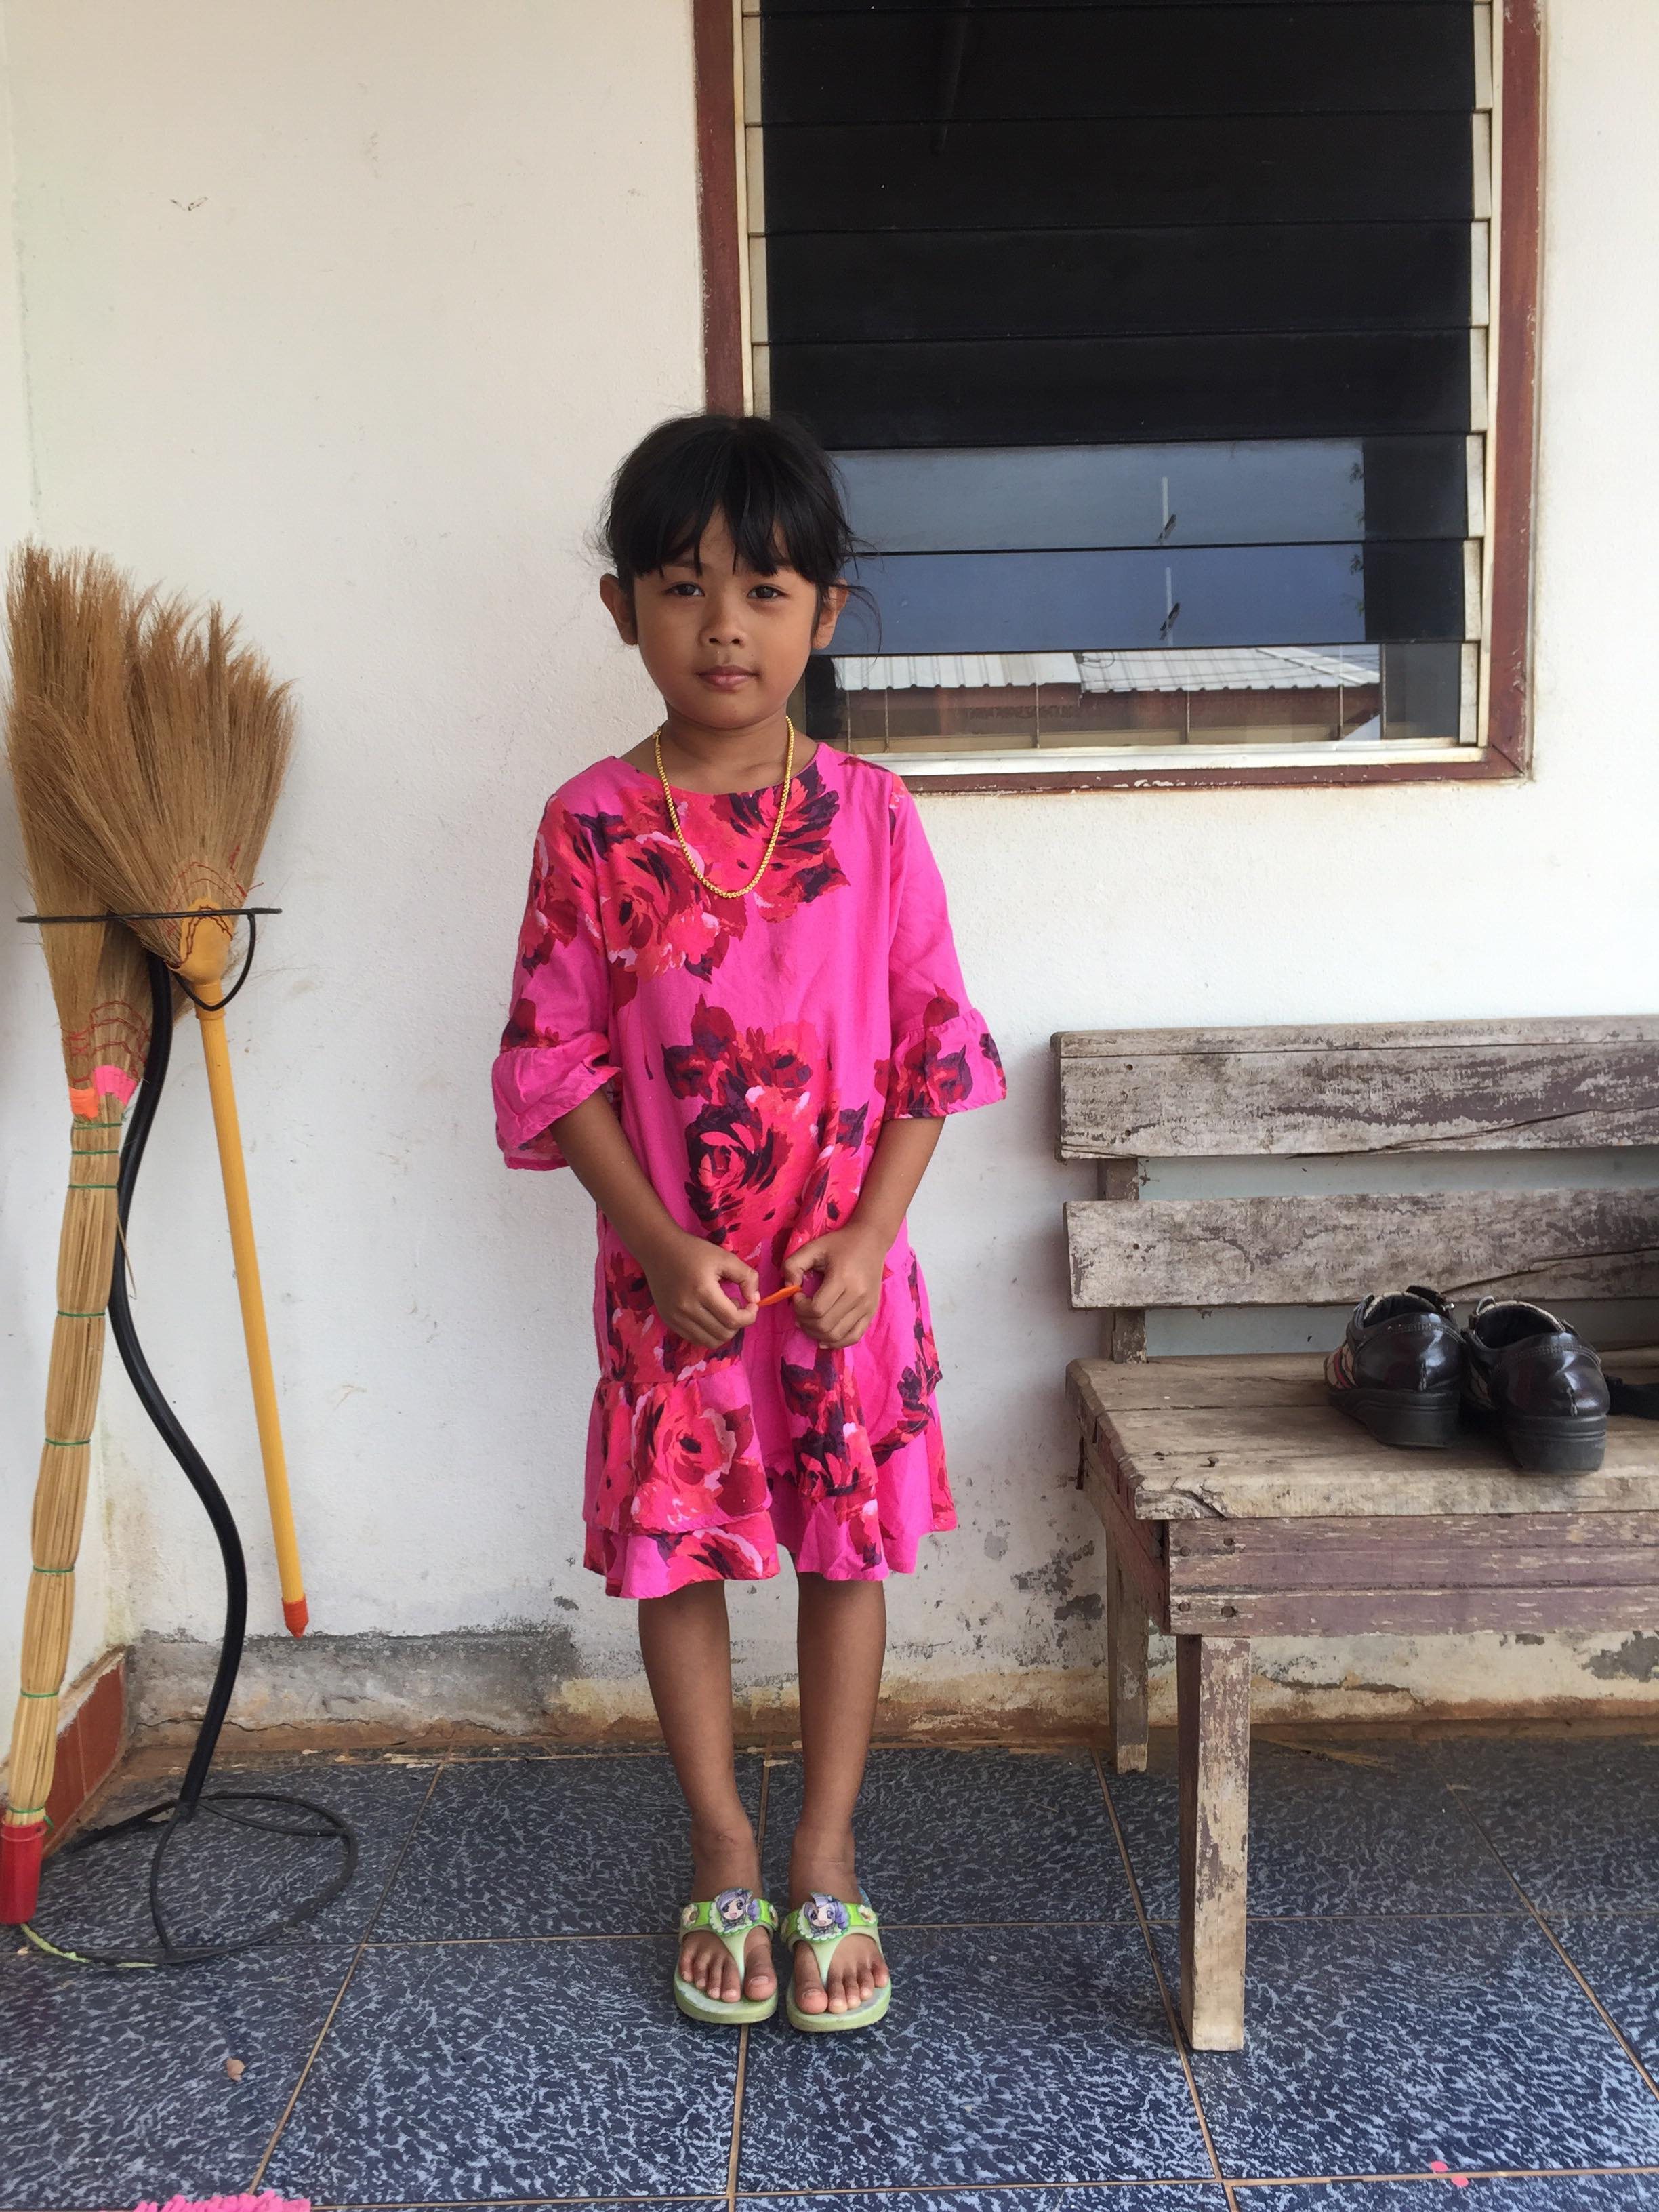 Taksana Buankratoke (moowan) (7 years old, girl)